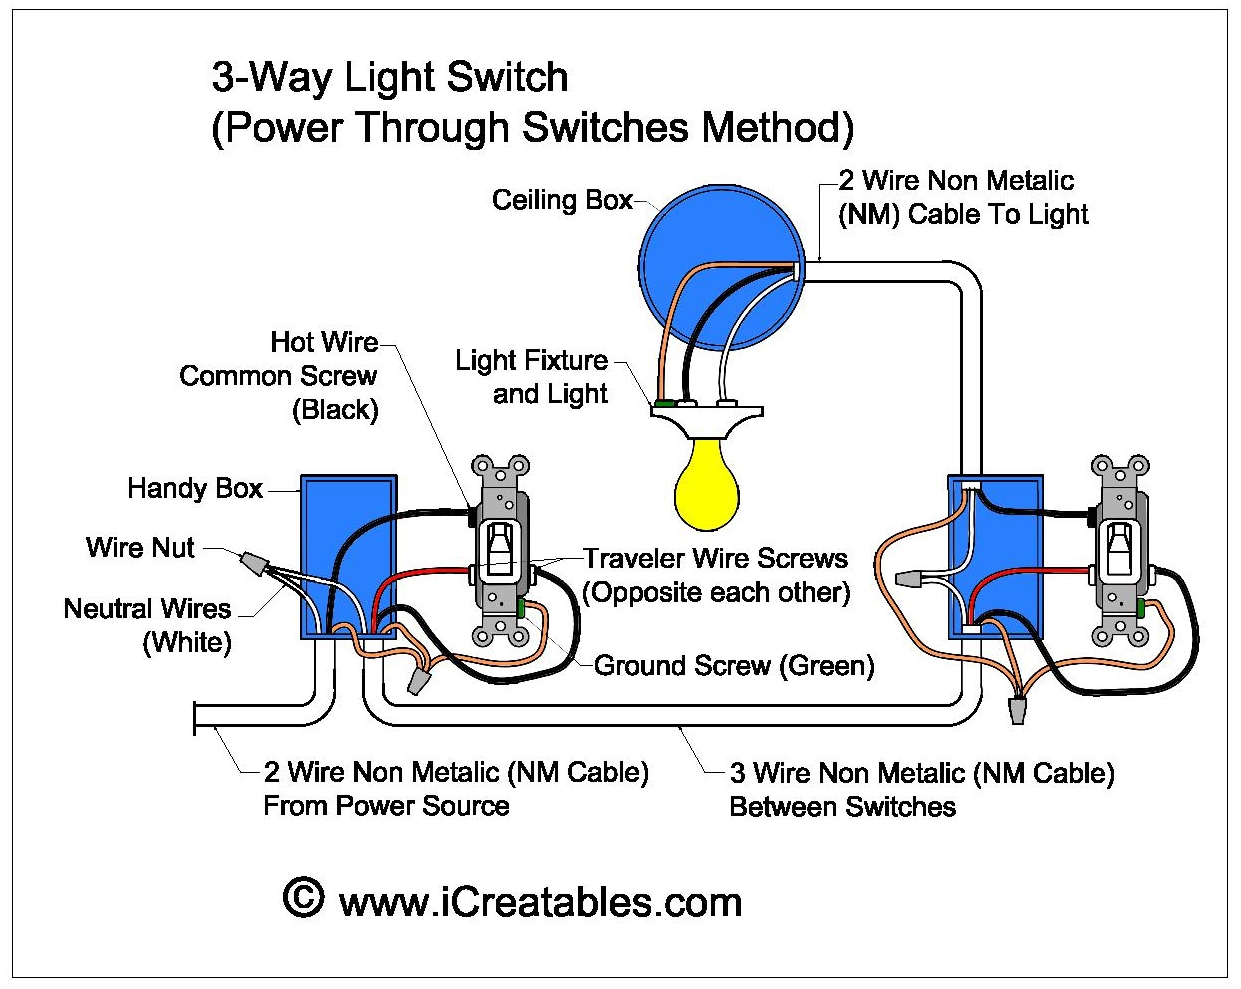 wiring diagram 2 switches 1 light sagittal brain labeled wire a three way switch icreatables